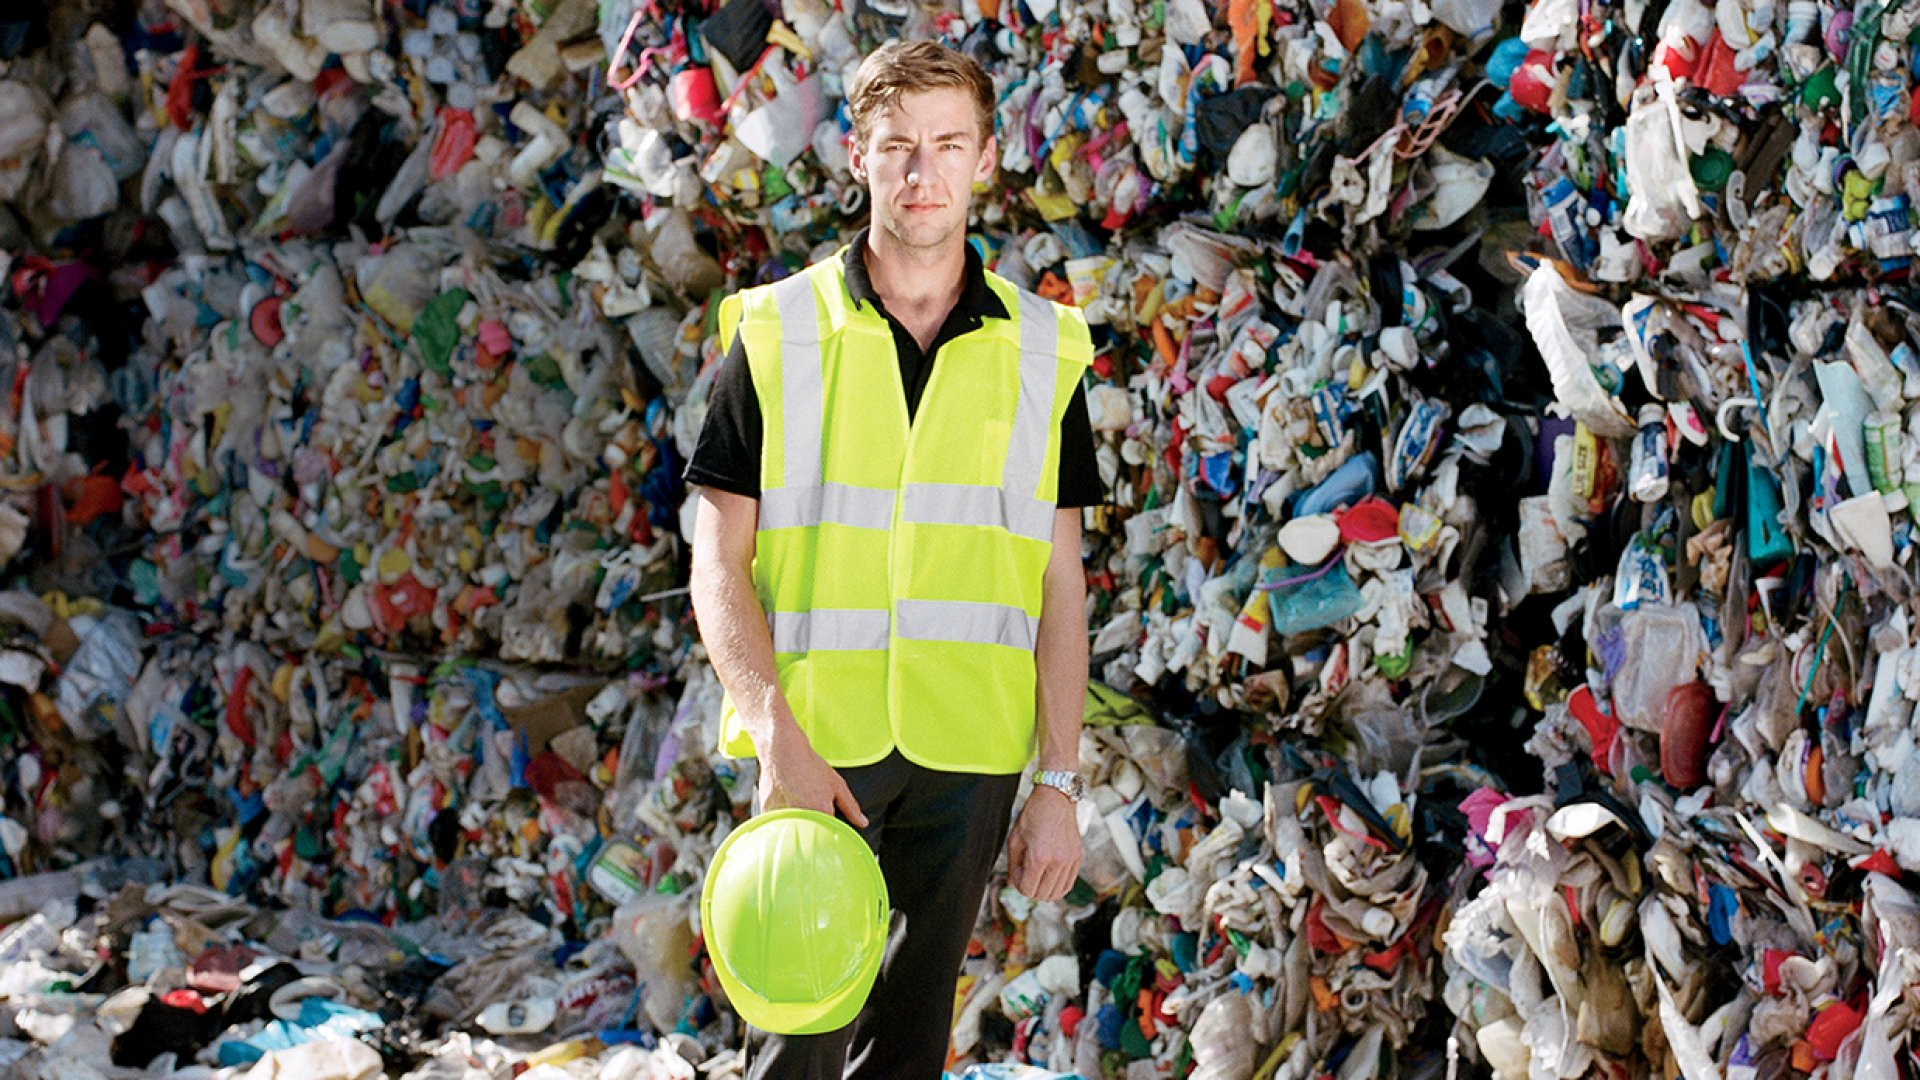 Where others see waste, Hunter Moore finds business opportunity-like in this recycling plant in Memphis that his company, Moore Advanced, staffs and cleans.